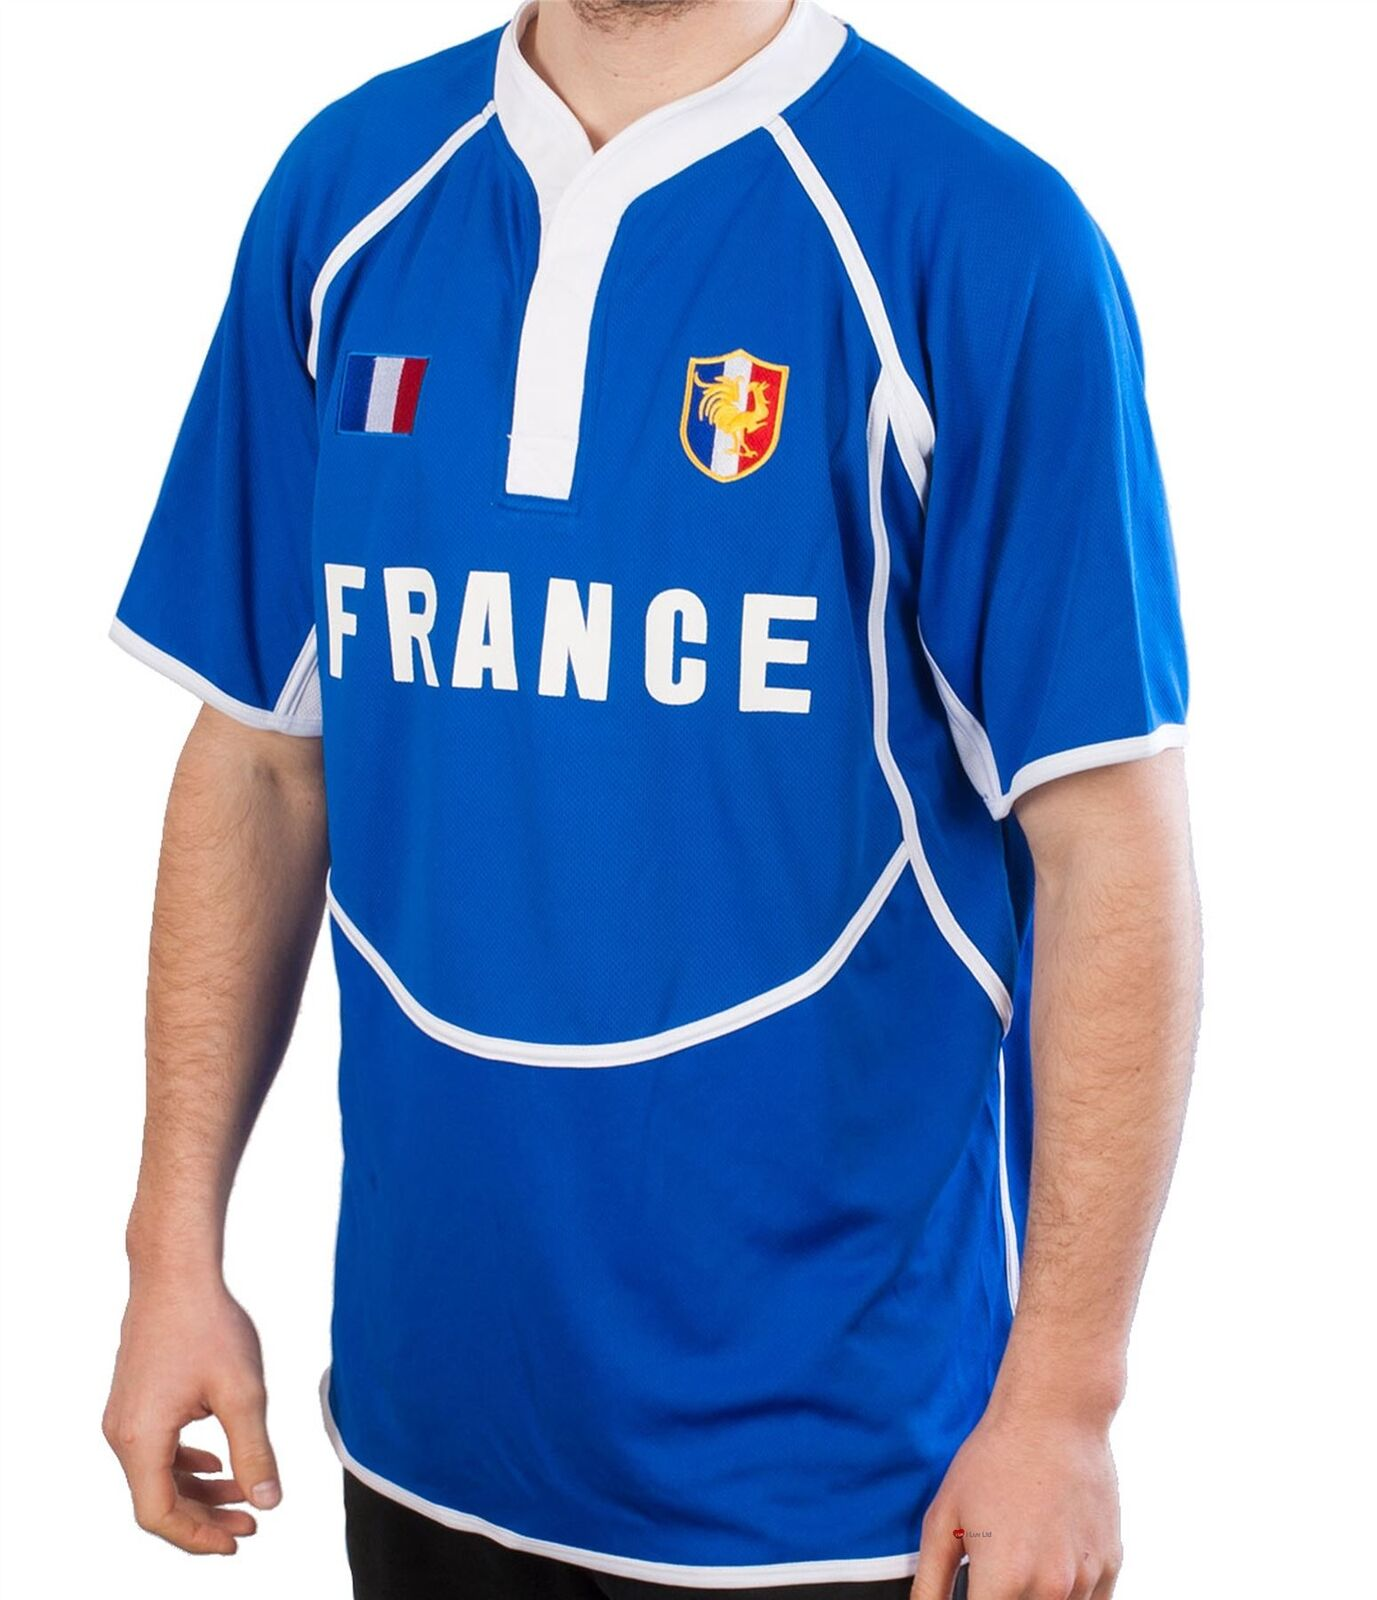 Gents COOLDRY Stile Rugby Camicia in Francia Francia Francia colorei dimensione X-Large dc2022